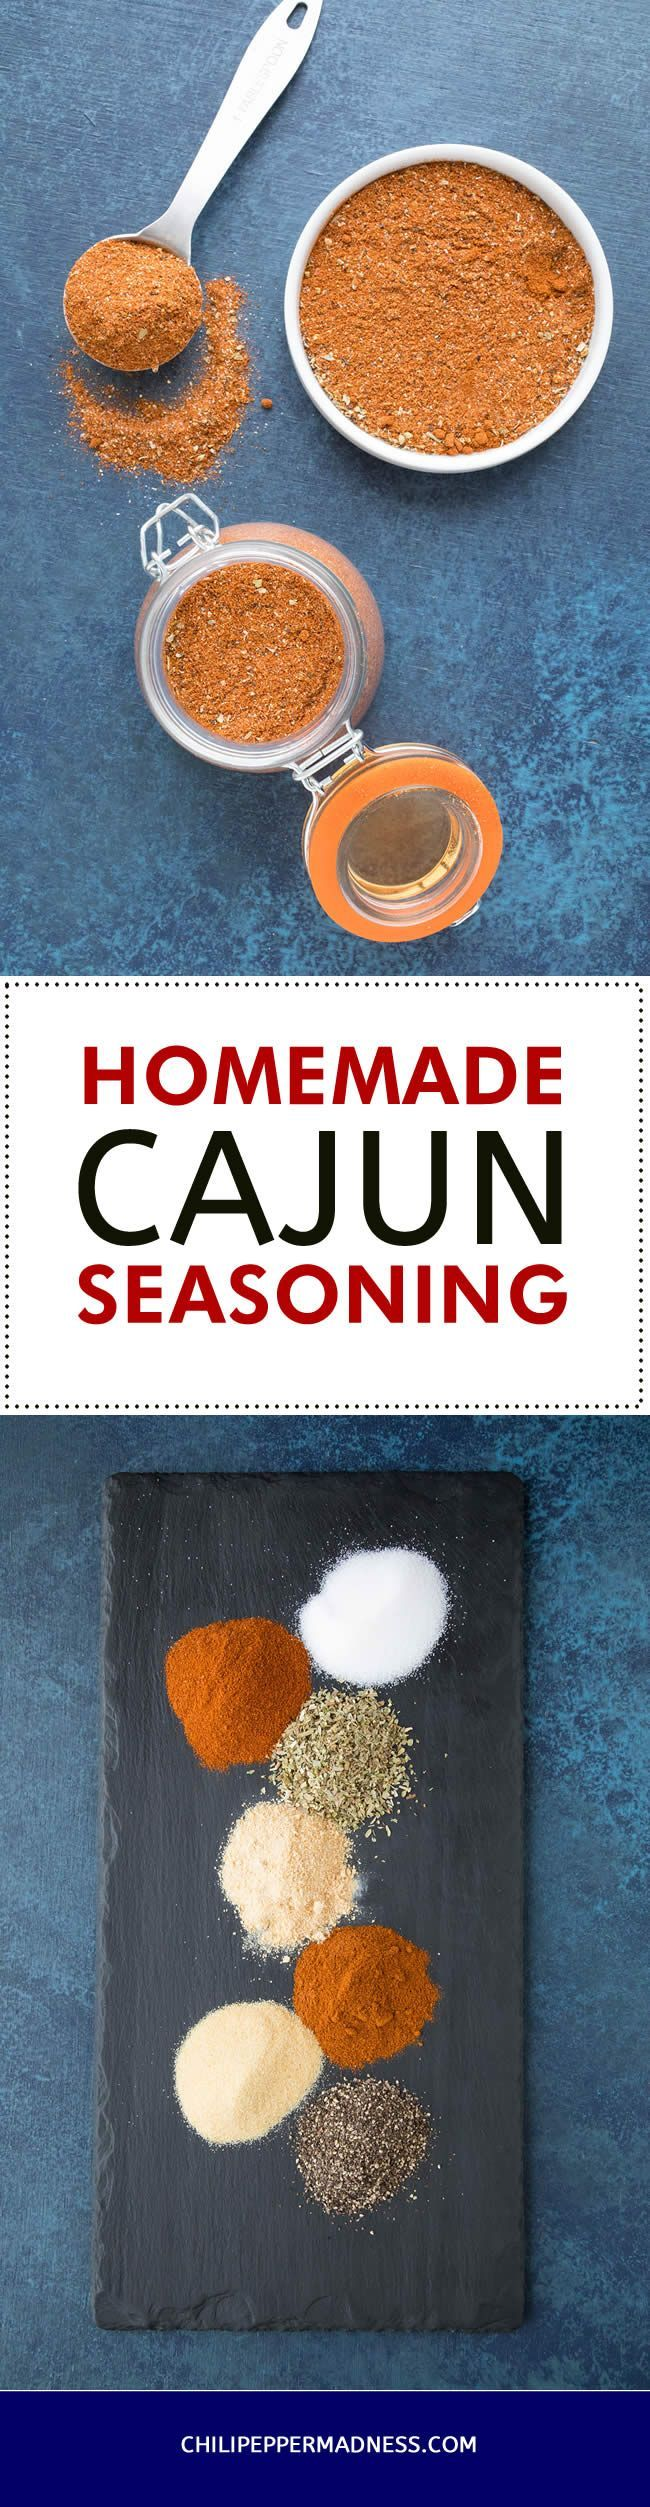 Homemade Cajun Seasoning -  Use this recipe method to make your own Cajun seasoning blend at home from scratch, with your own preferred ingredients.